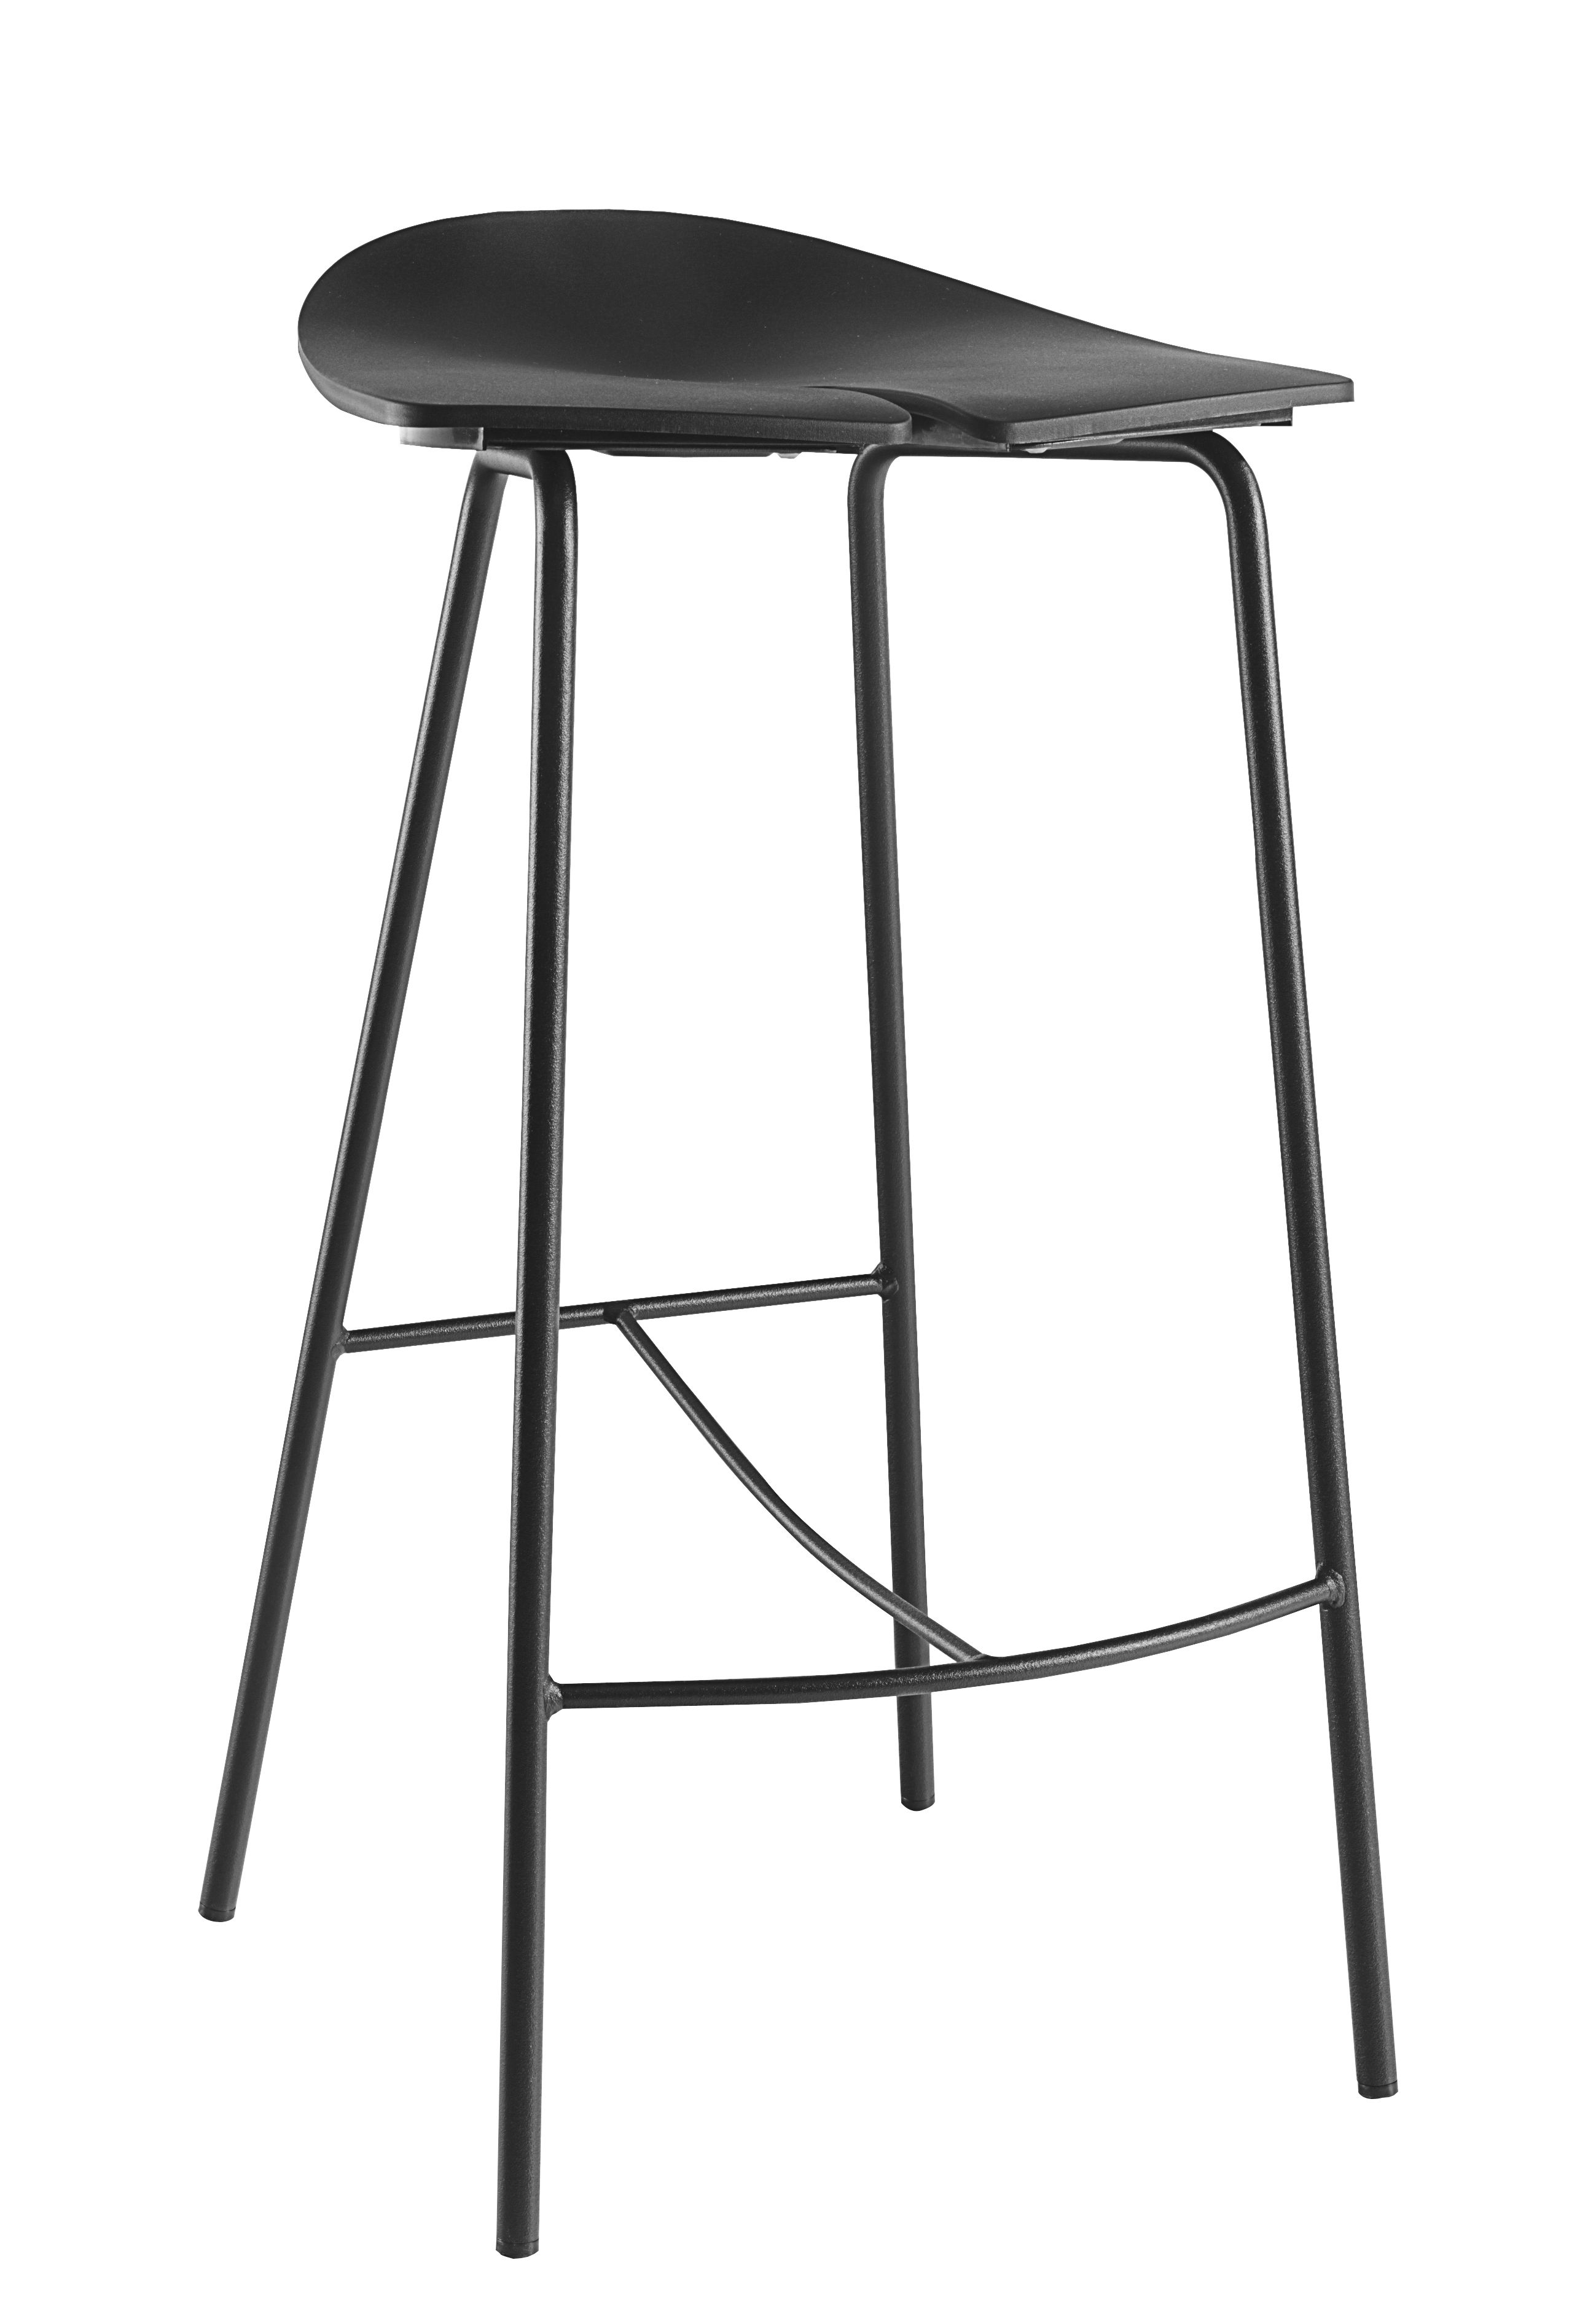 tabouret de bar ant h 68 cm plastique pieds m tal noir ondarreta. Black Bedroom Furniture Sets. Home Design Ideas